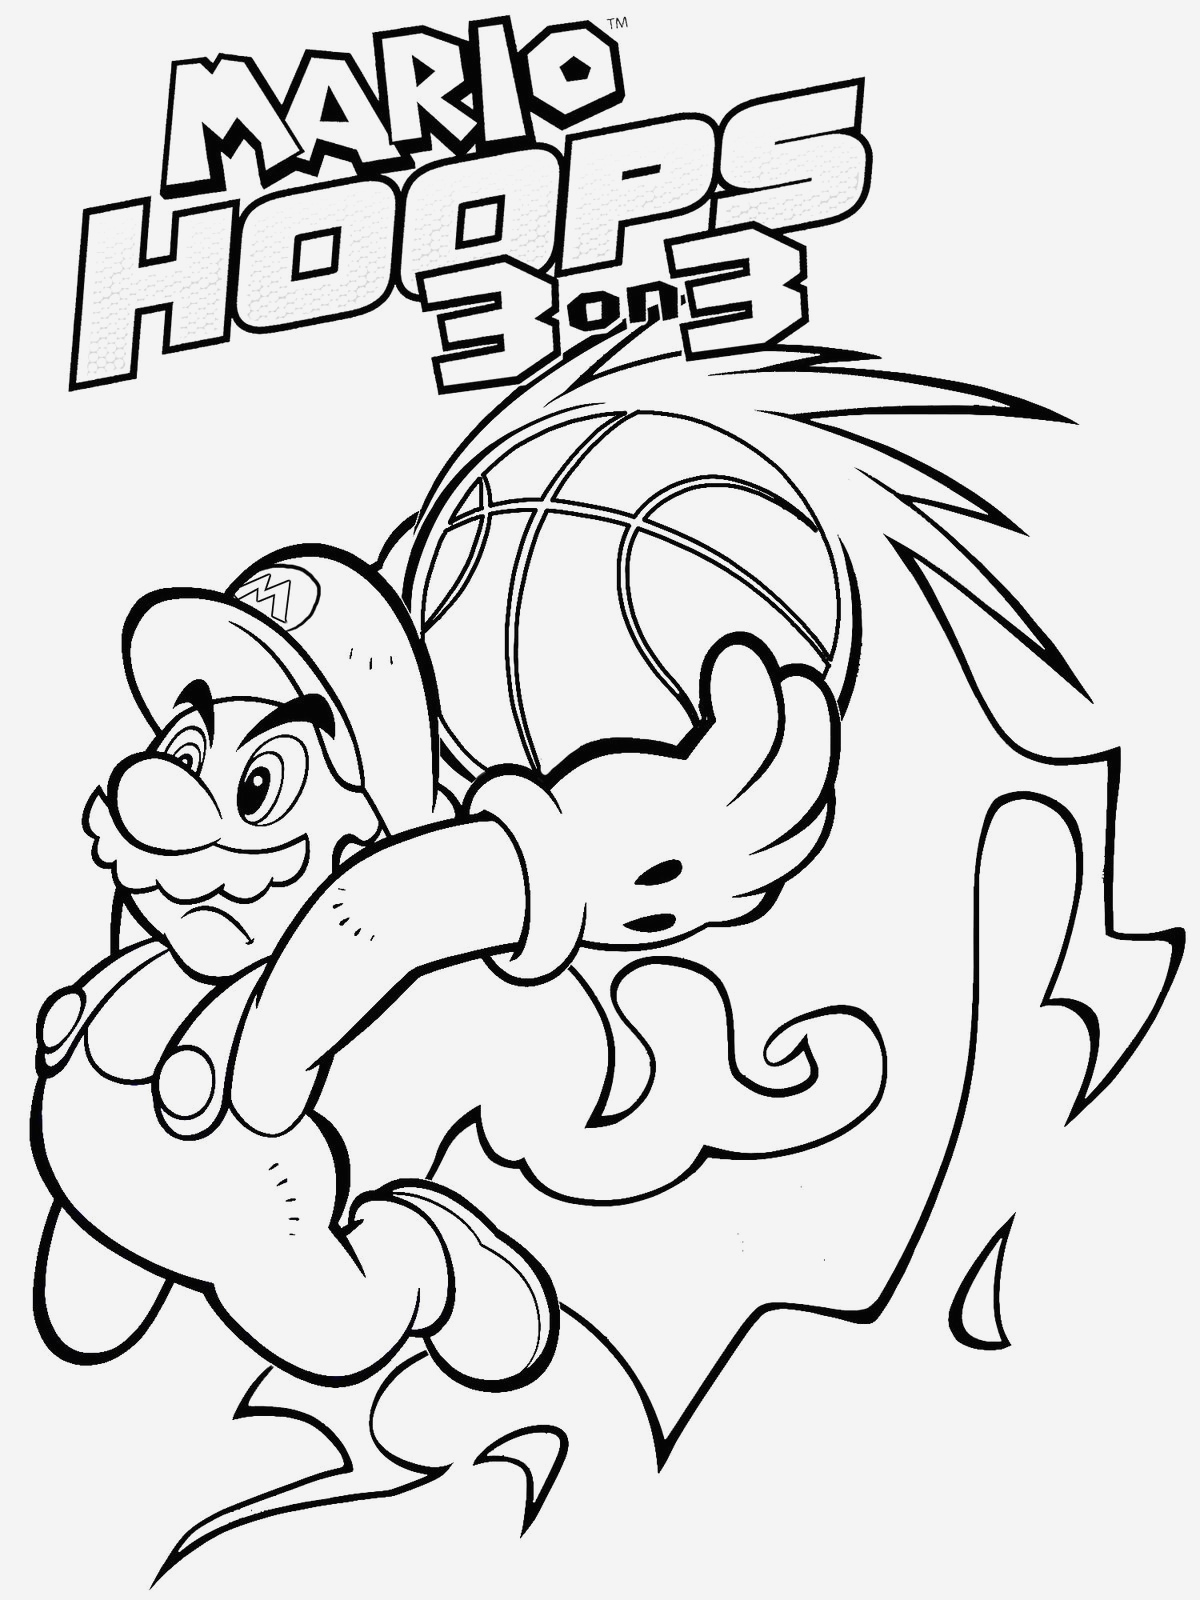 Coloriage Mario Kart Elegant Coloring Pages Free Printable Mario Coloring for Kids Of Coloriage Mario Kart